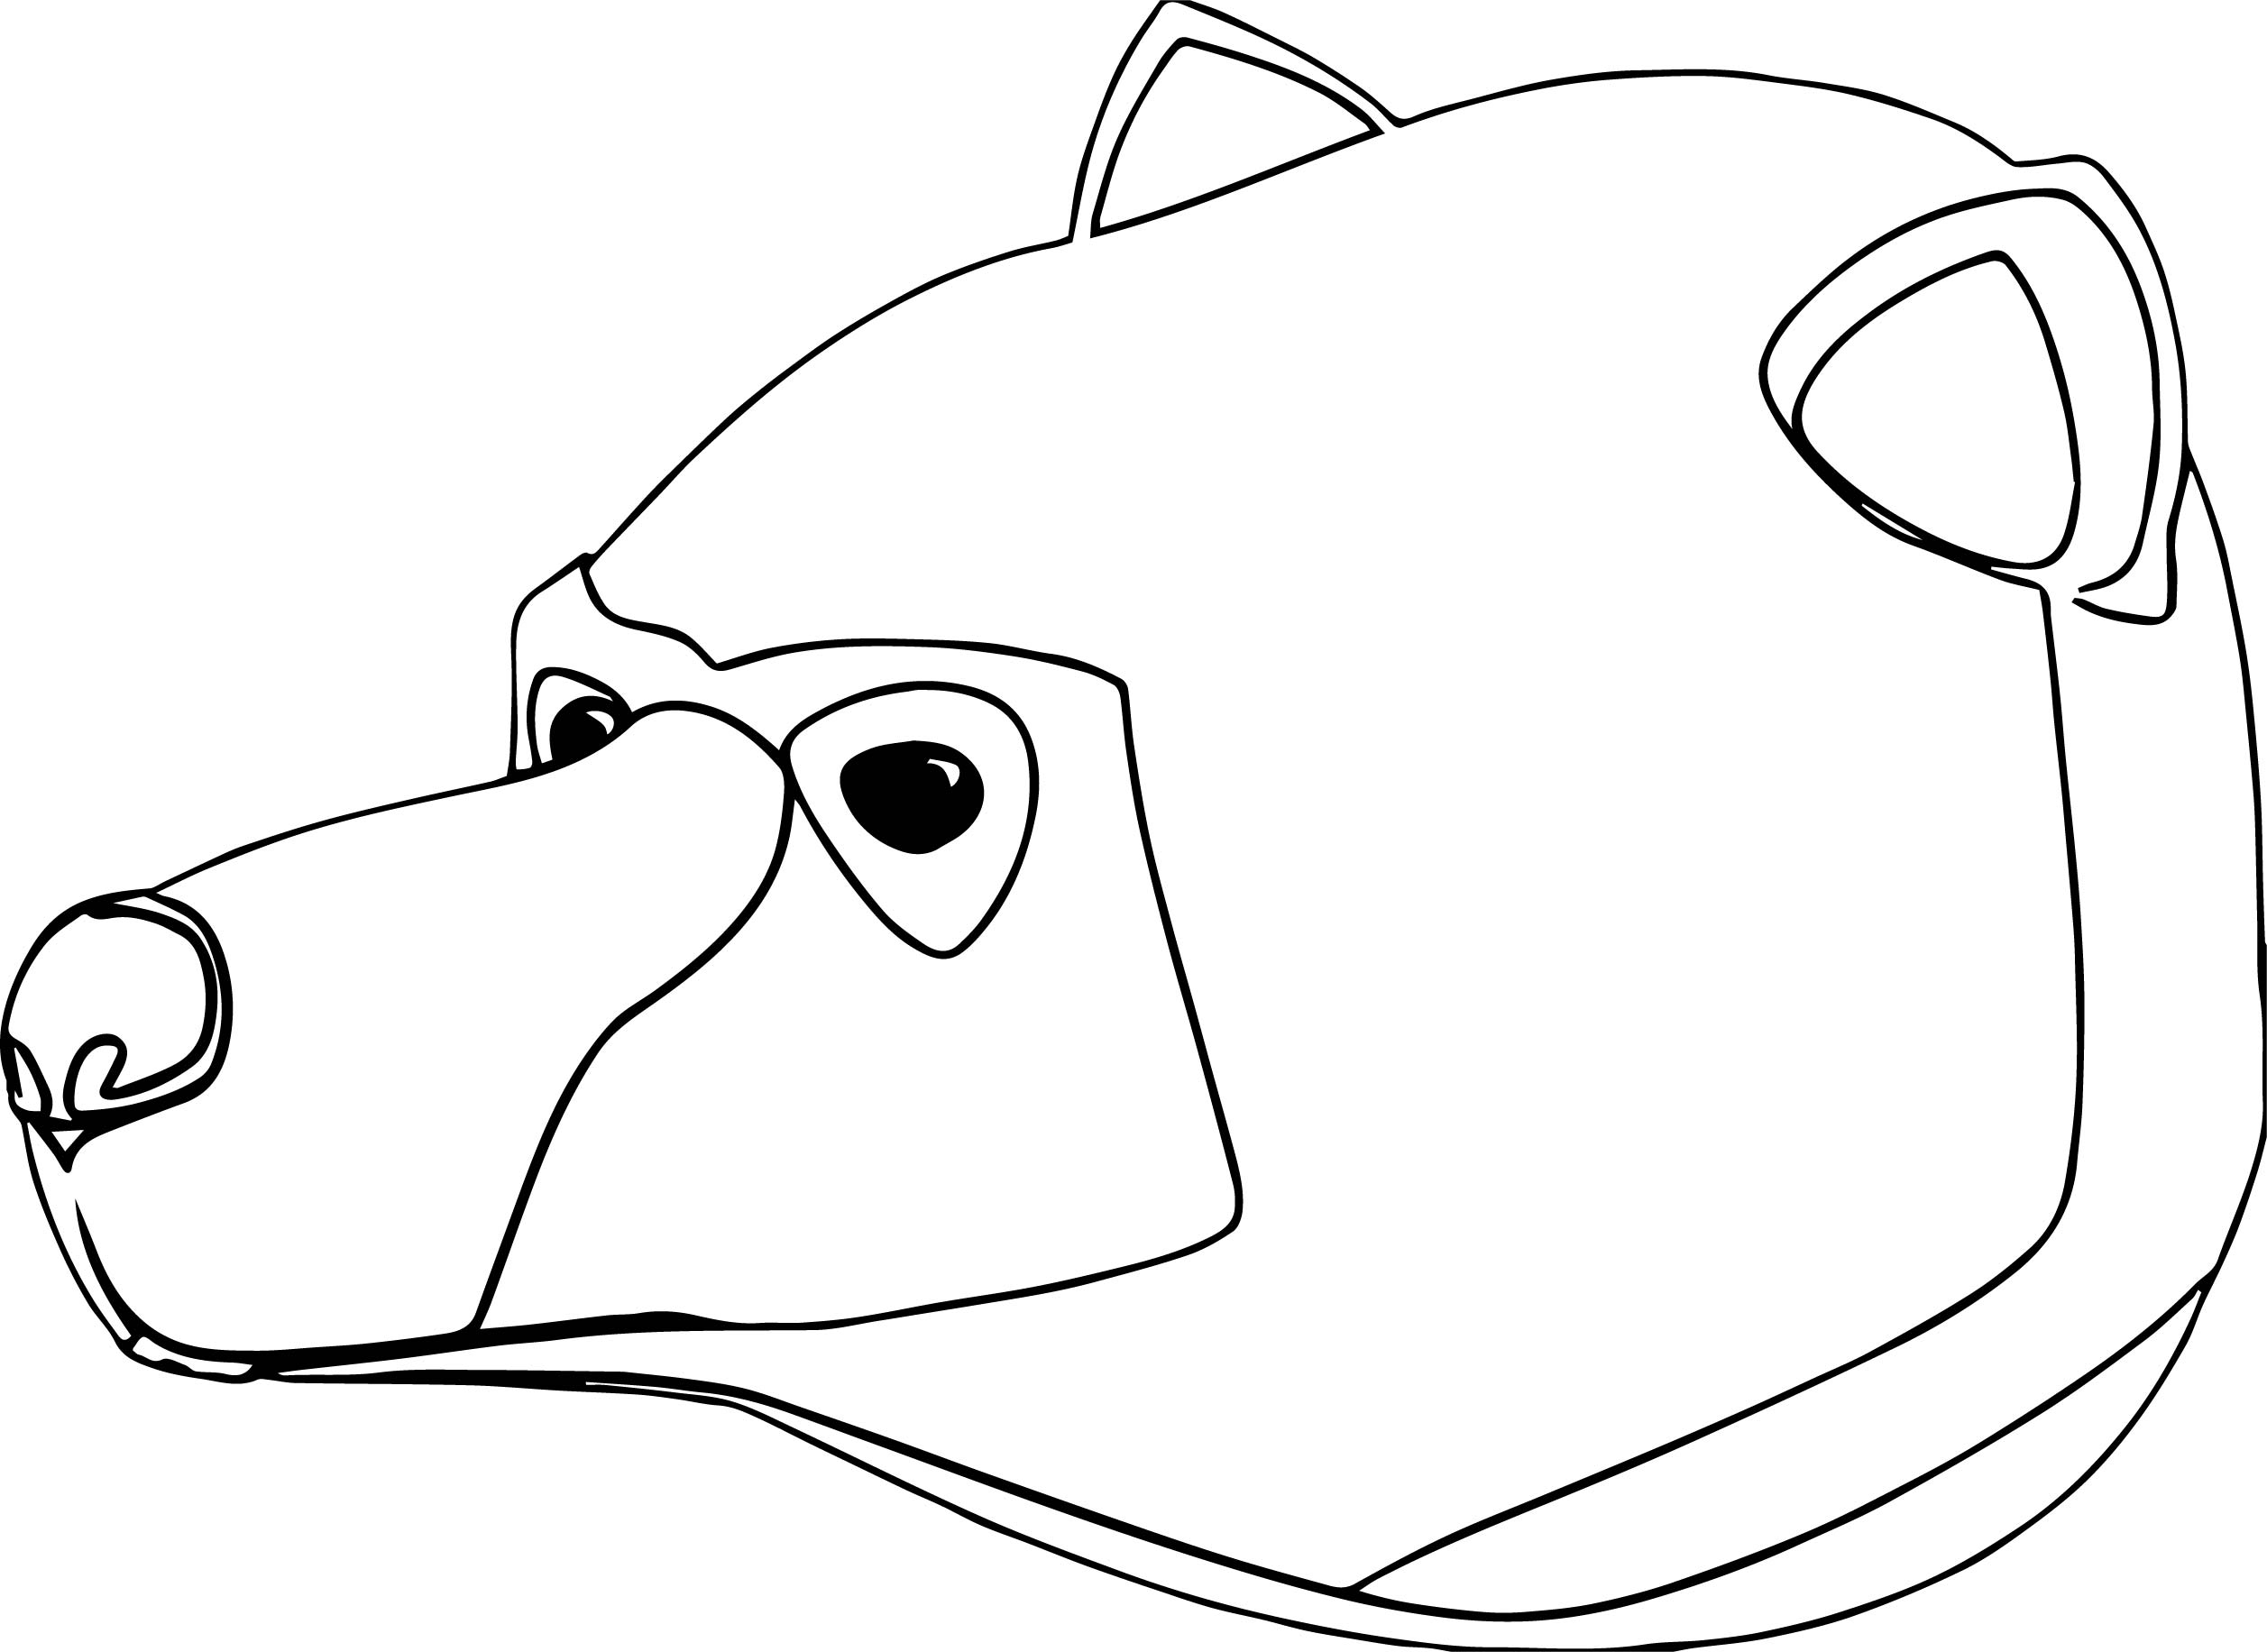 Bear big head coloring page for Bear head coloring page